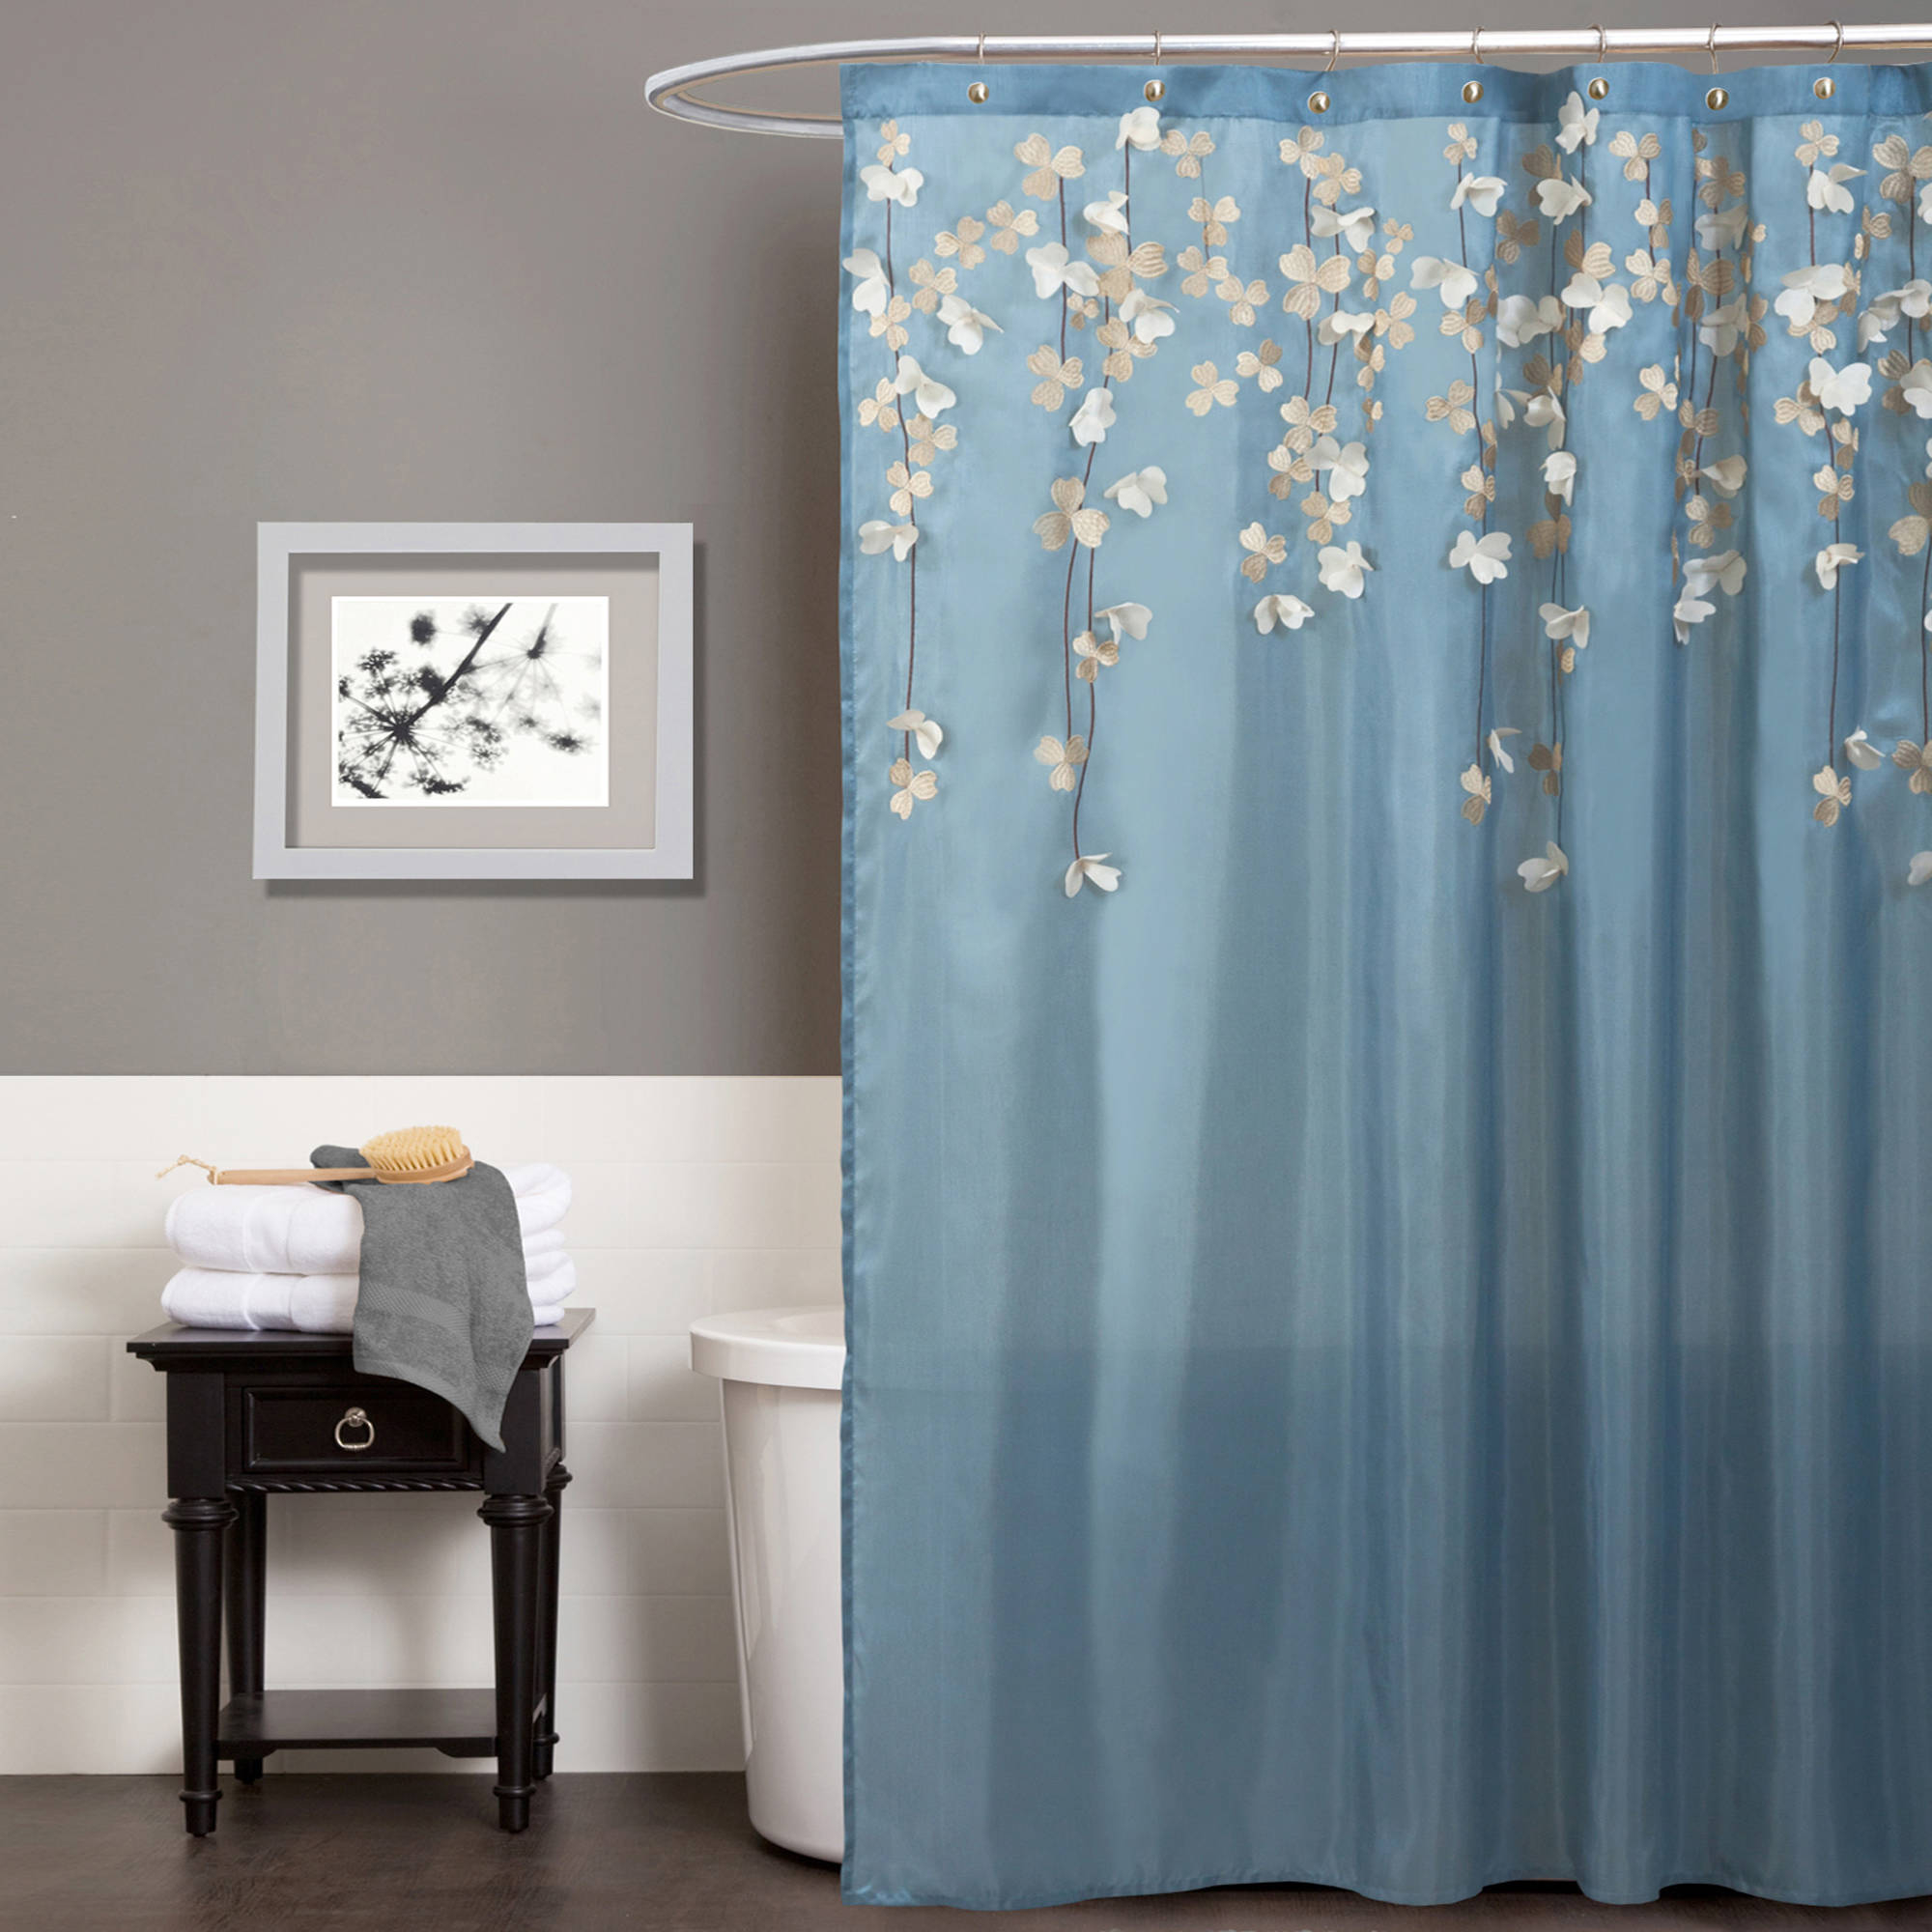 weightsdecorative full images tag unique designs rings curtains decorative dollar curtain gold concept incredible tree tags size sets of shower